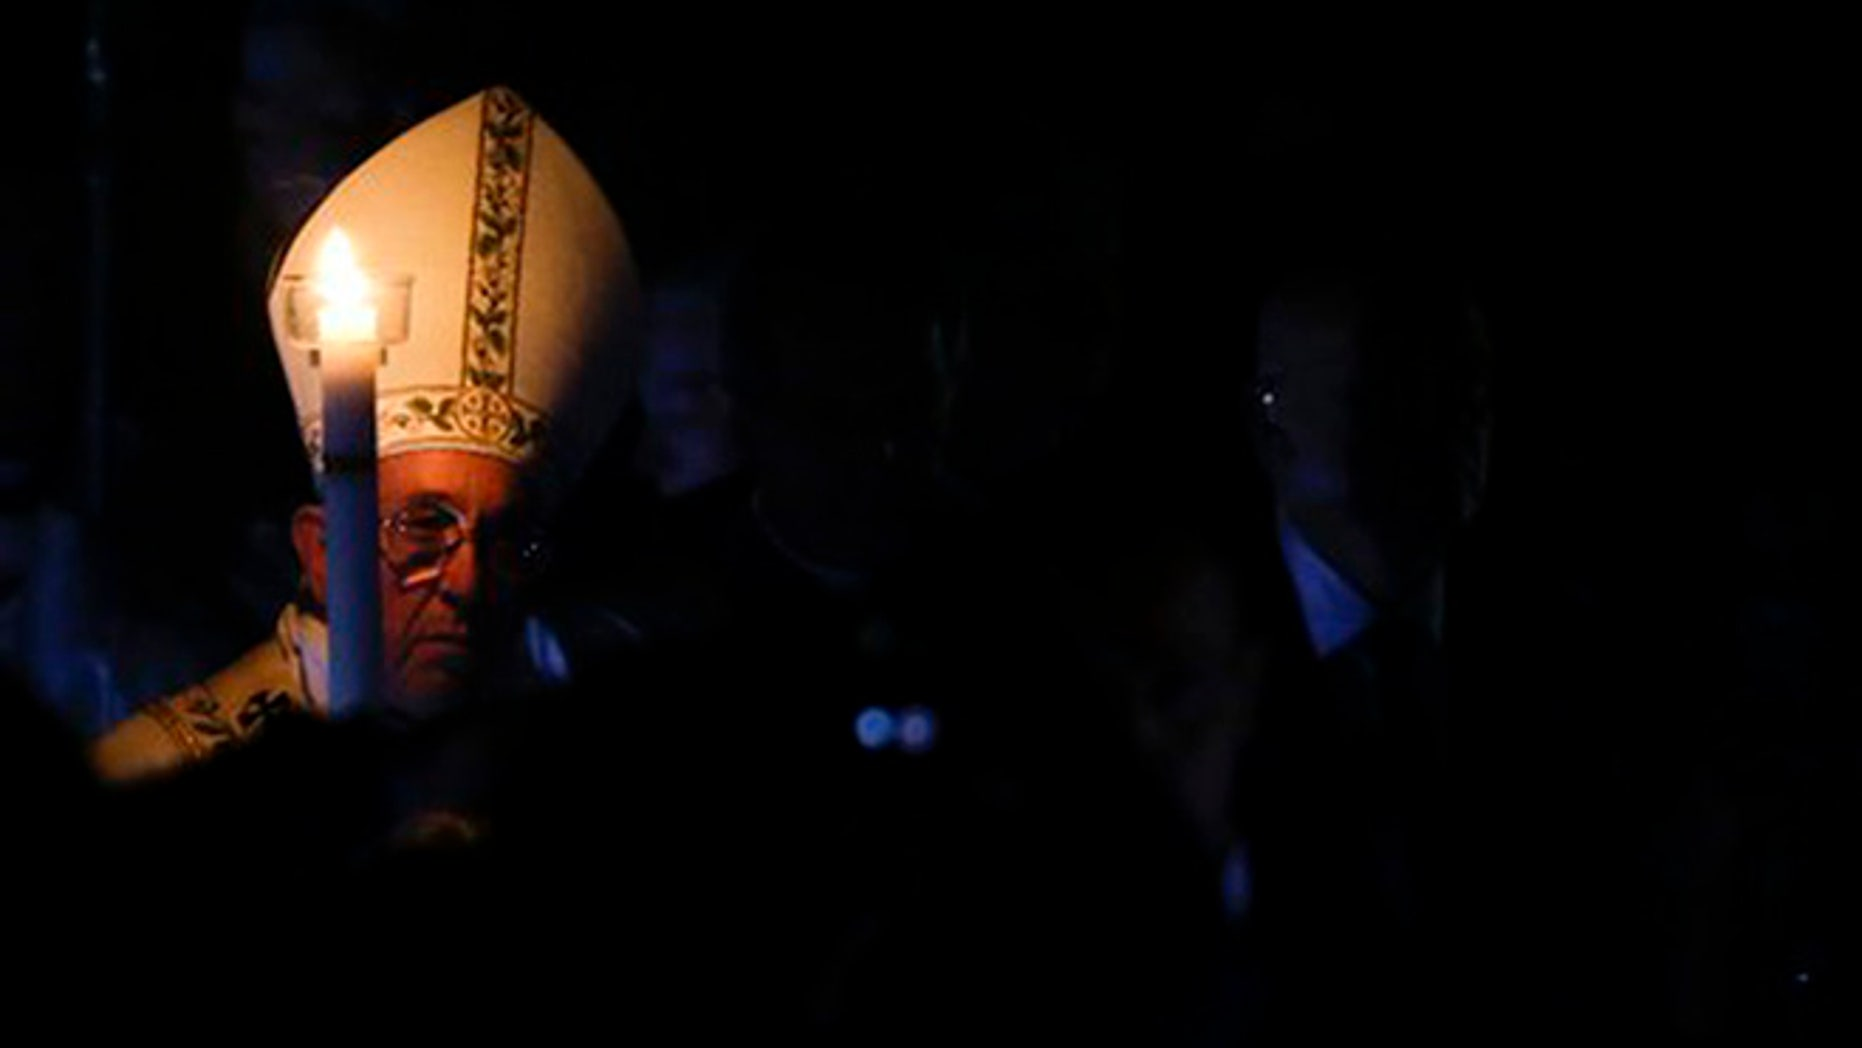 Pope Francis holds a white candle as he arrives for an Easter vigil service, in St. Peter's Basilica, at the Vatican, Saturday, March 26, 2016. (AP Photo/Gregorio Borgia)